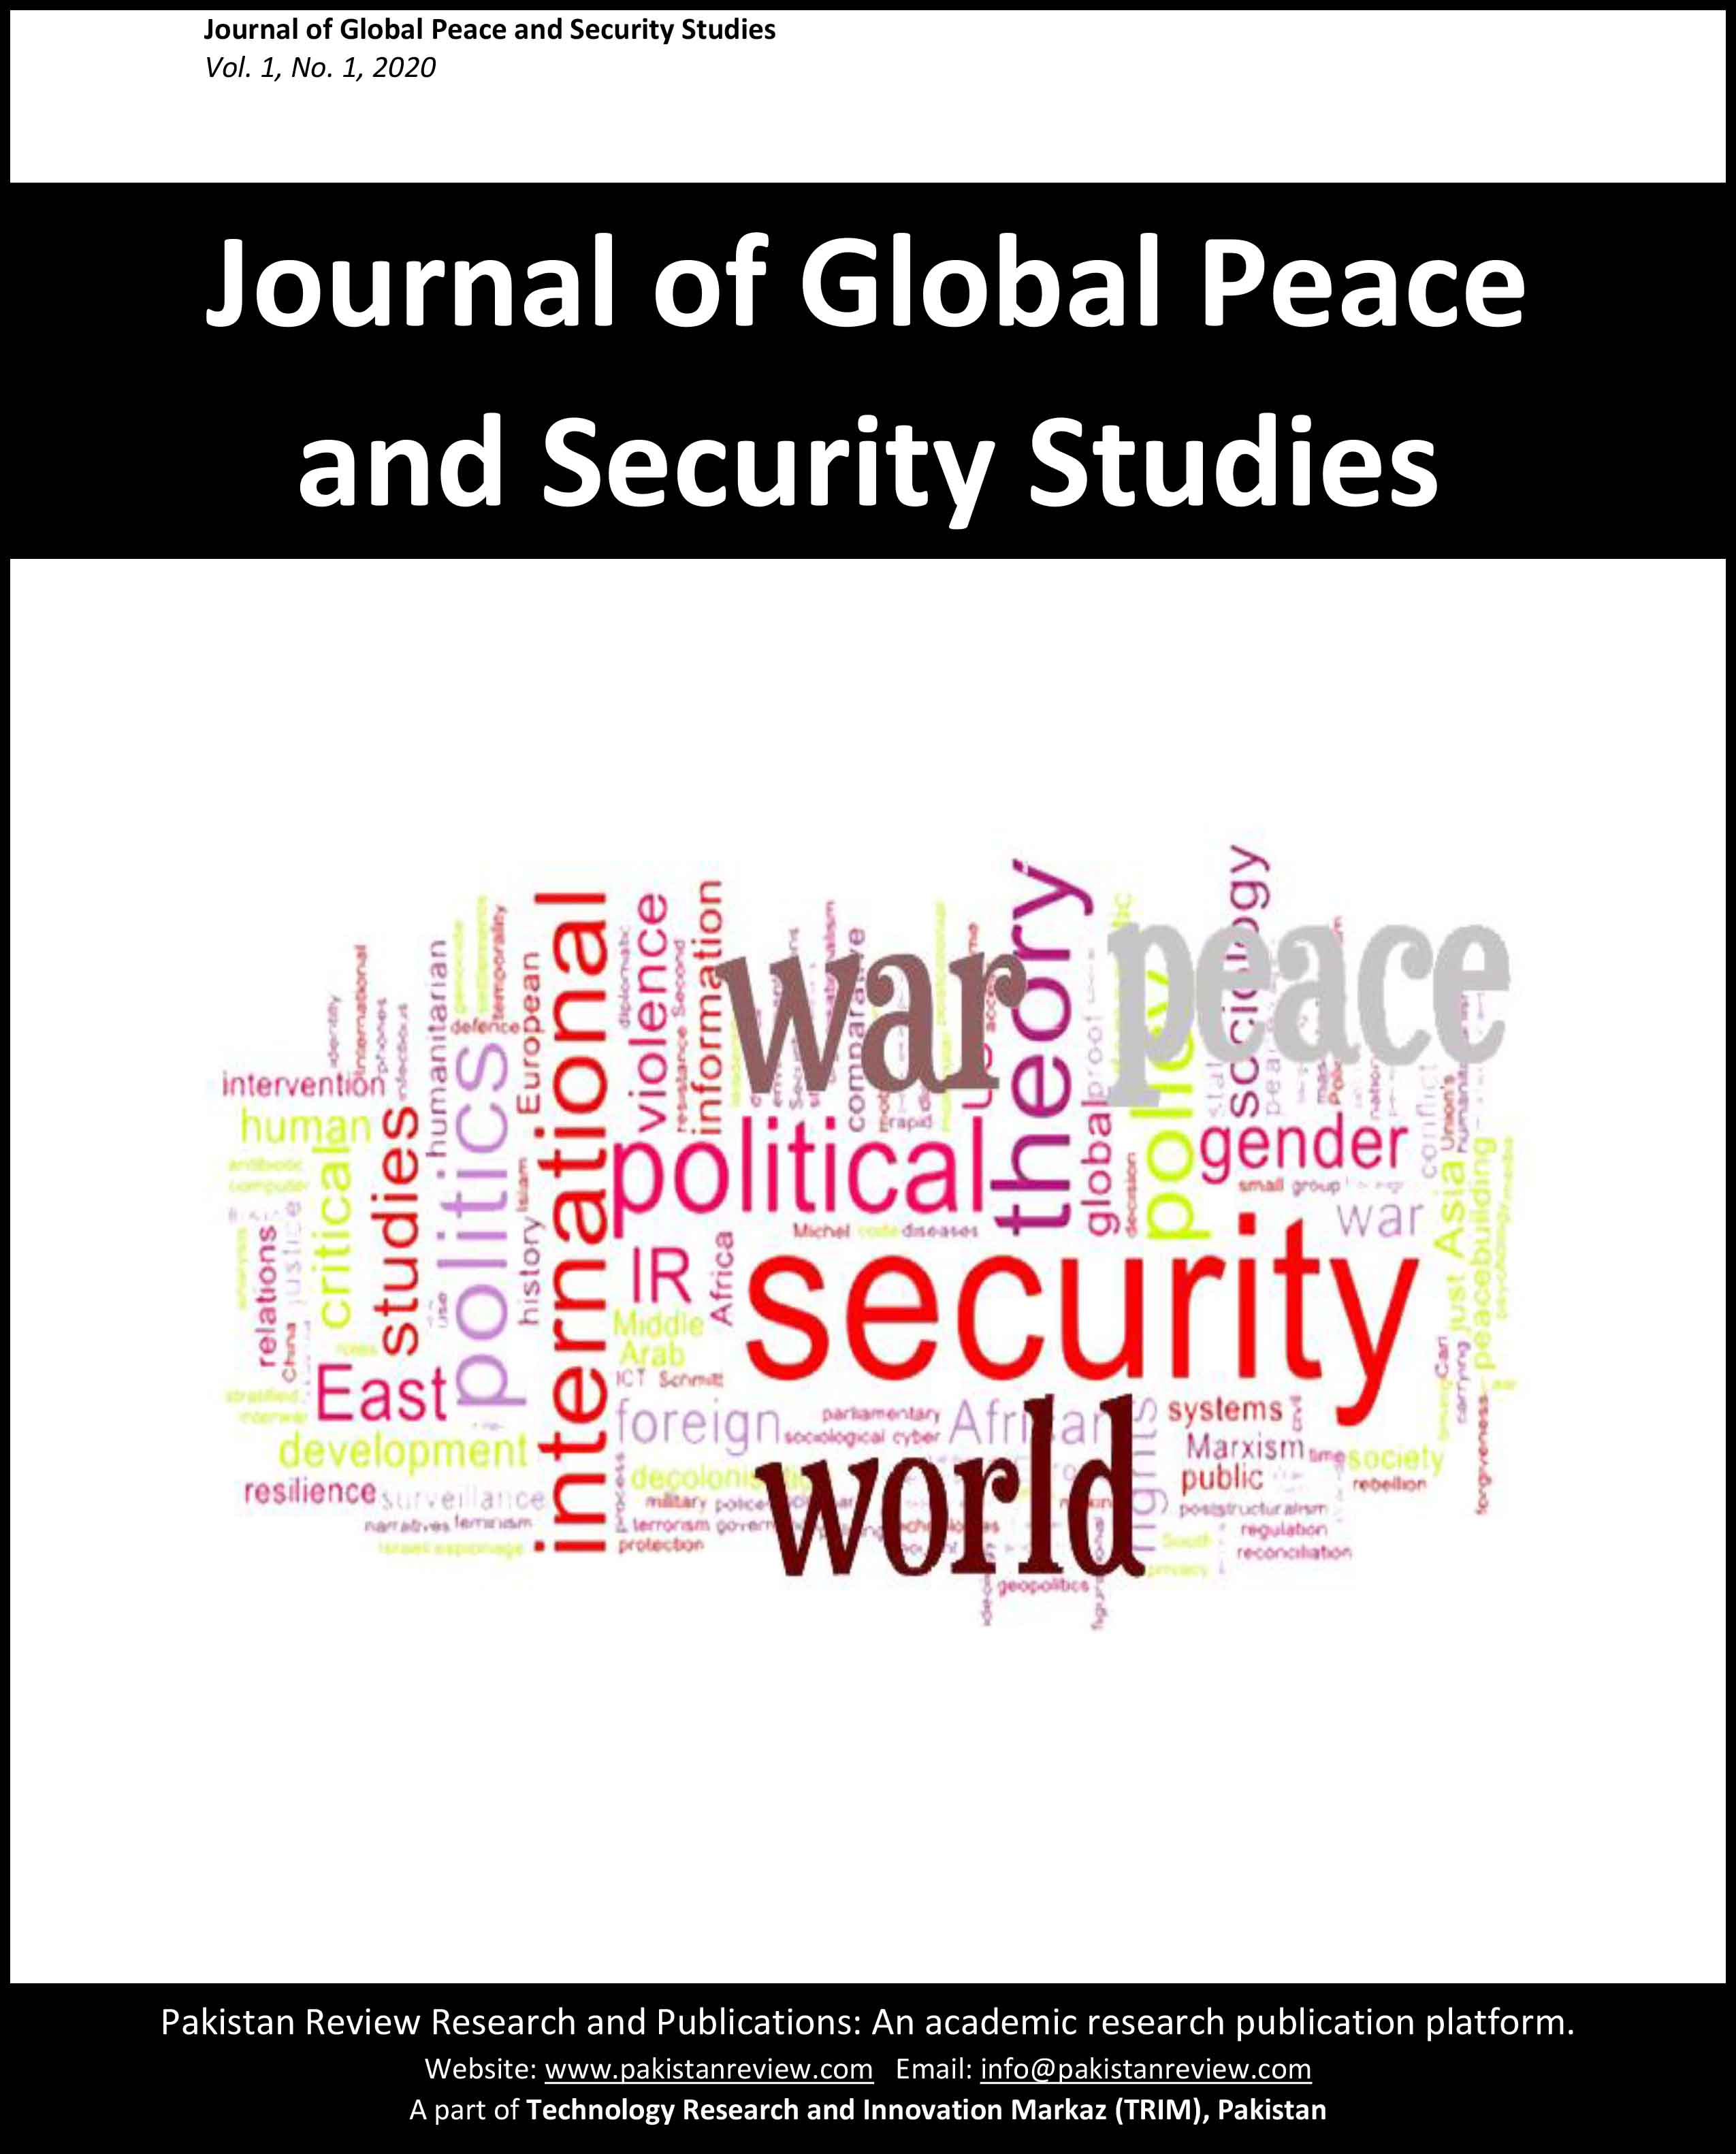 Journal of Global Peace and Security Studies (JGPSS)